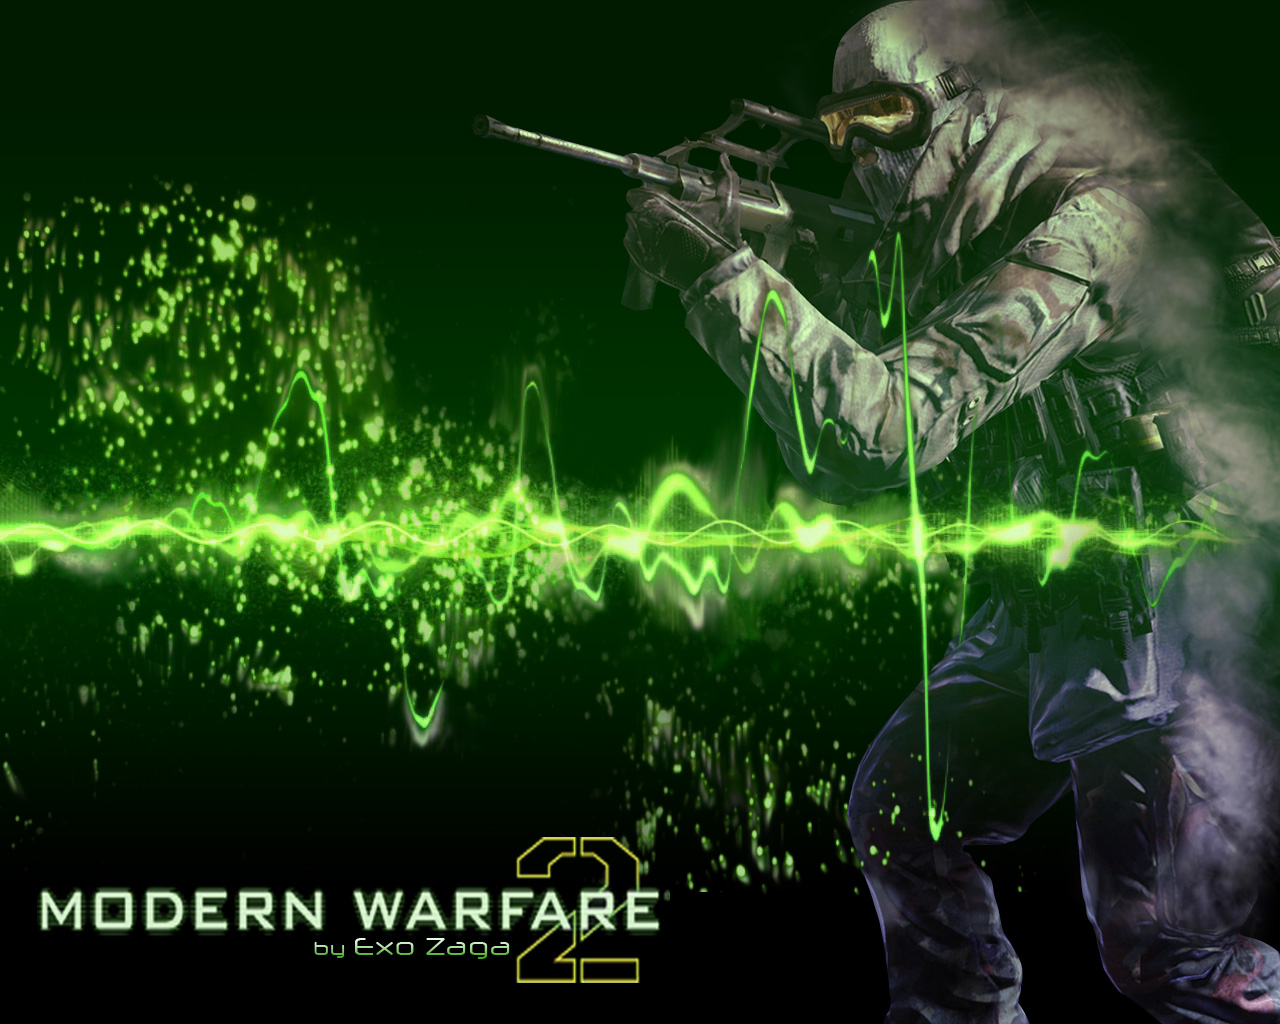 kane blog picz: call of duty mw2 hd wallpapers